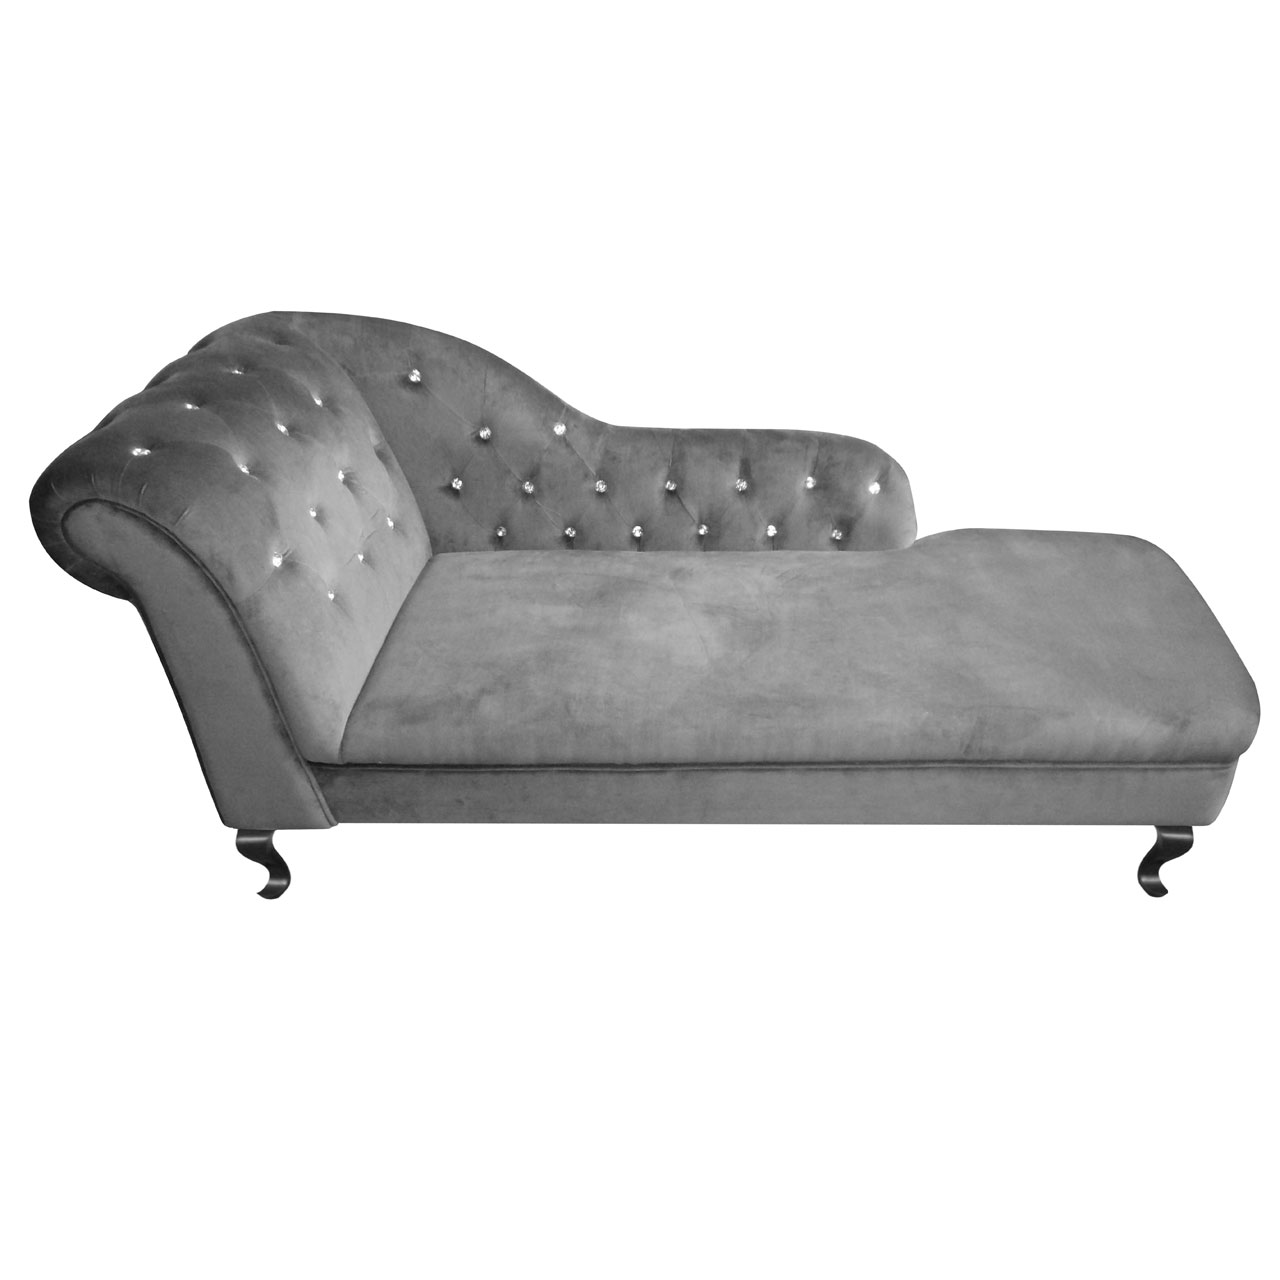 chesterfield chaise lounge charcoal grey velvet diamante detail left armrest ebay. Black Bedroom Furniture Sets. Home Design Ideas